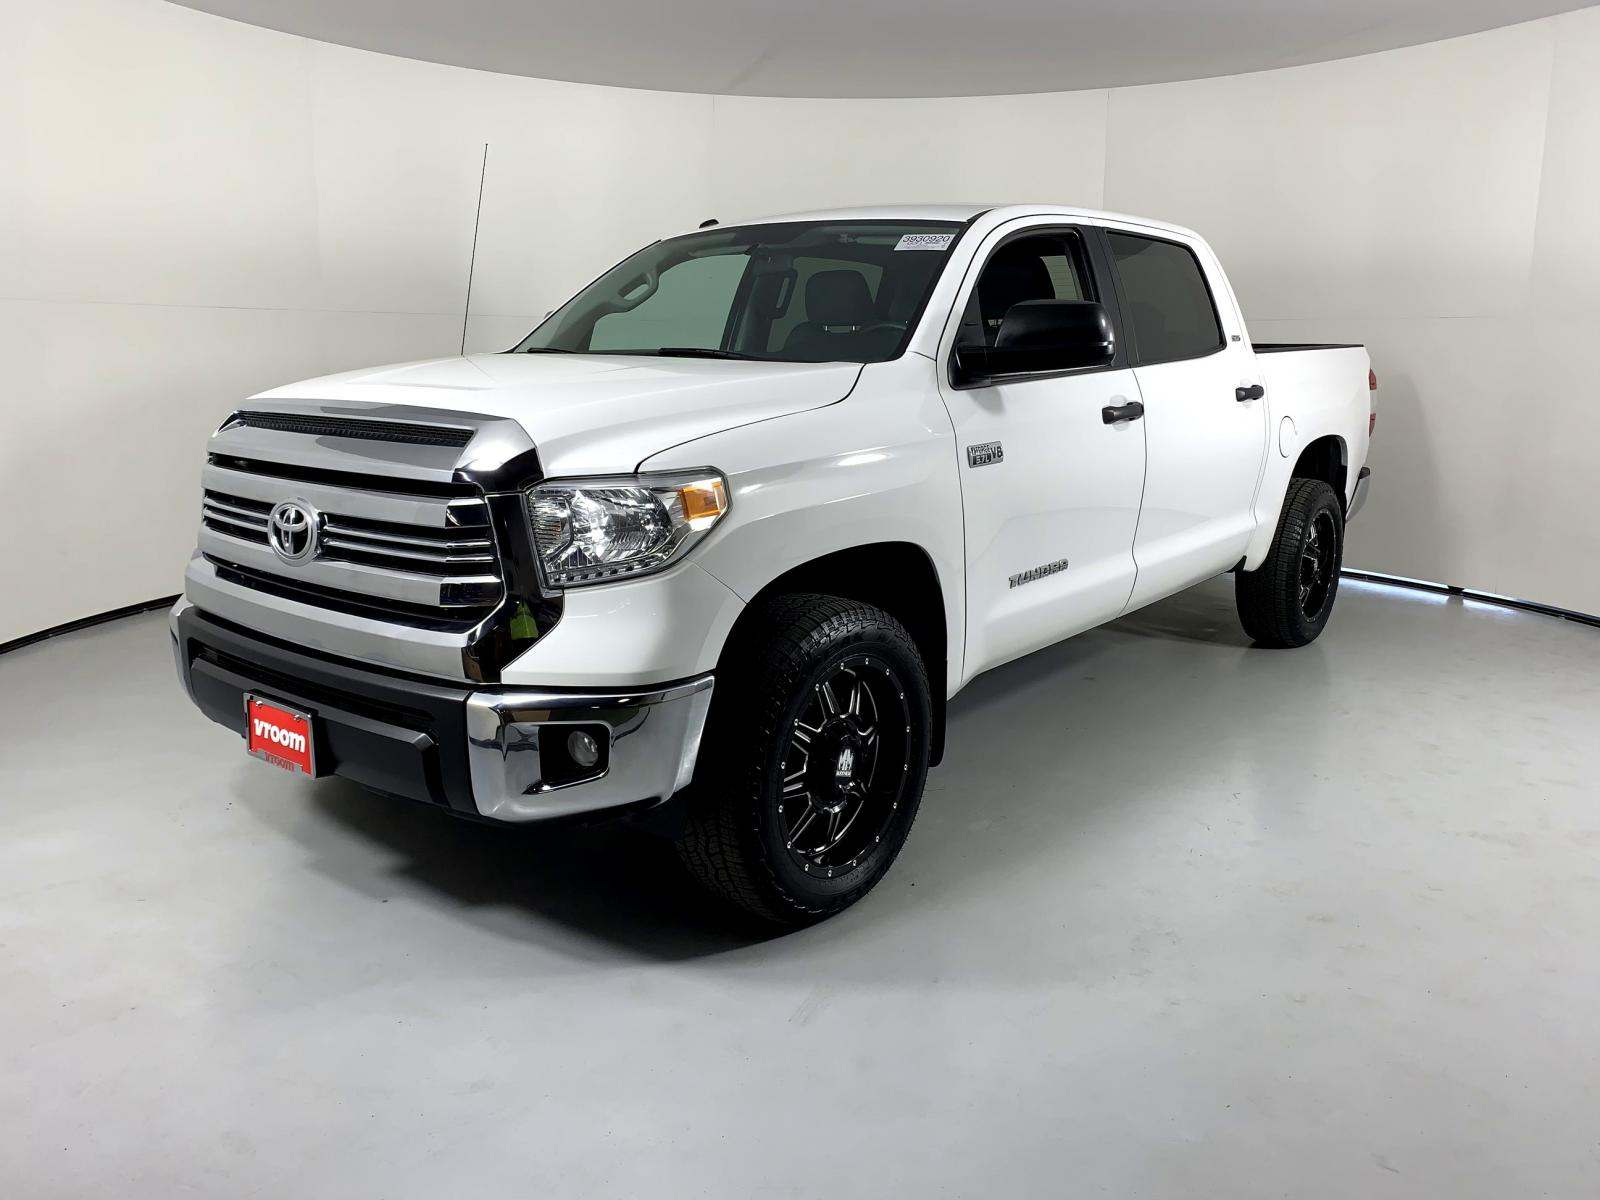 2016 Toyota Tundra For Sale >> Used 2016 Toyota Tundra For Sale 30 650 Vroom